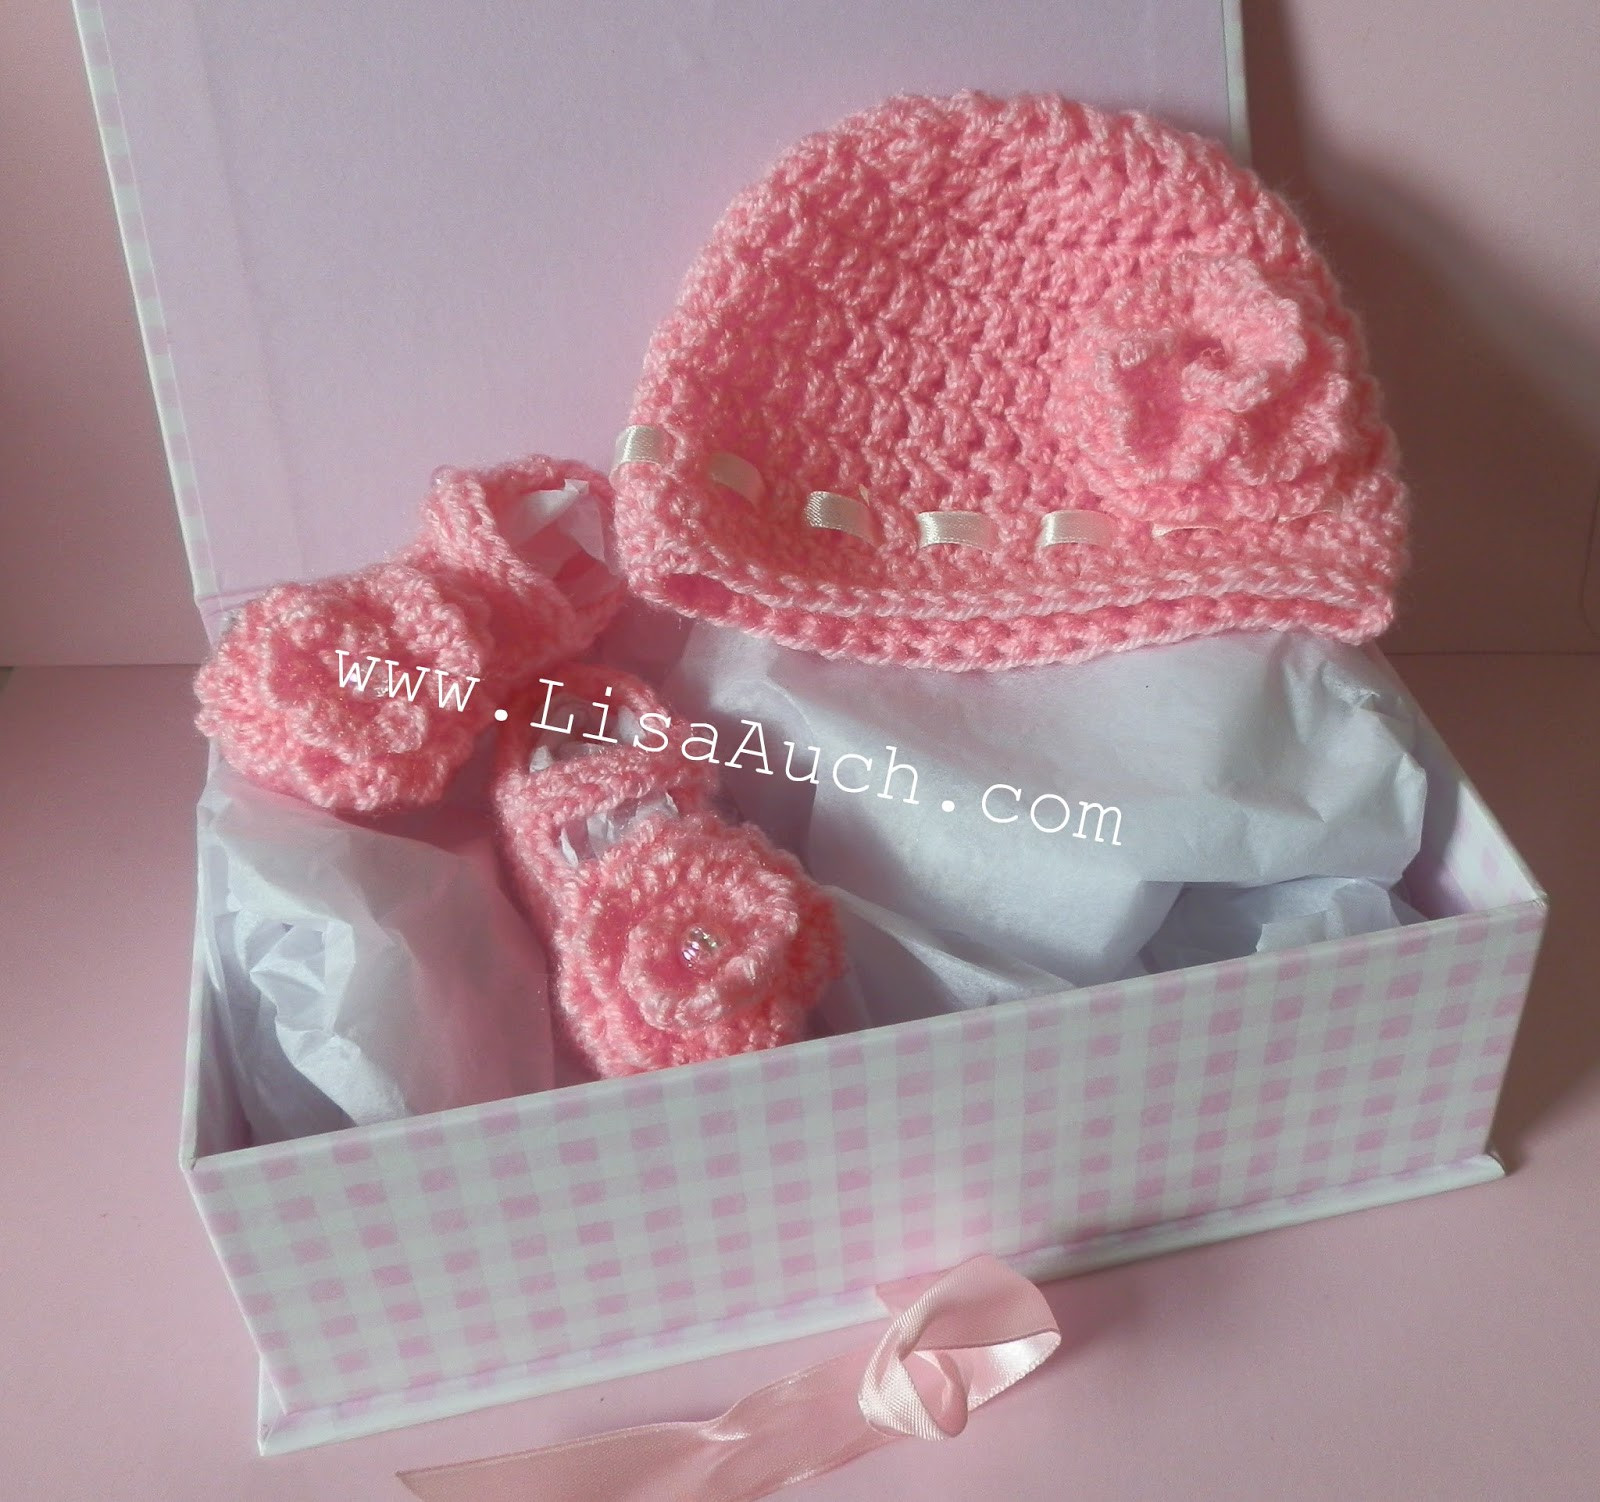 Crochet Baby Unique Free Crochet Patterns and Designs by Lisaauch Free Of Marvelous 50 Ideas Crochet Baby